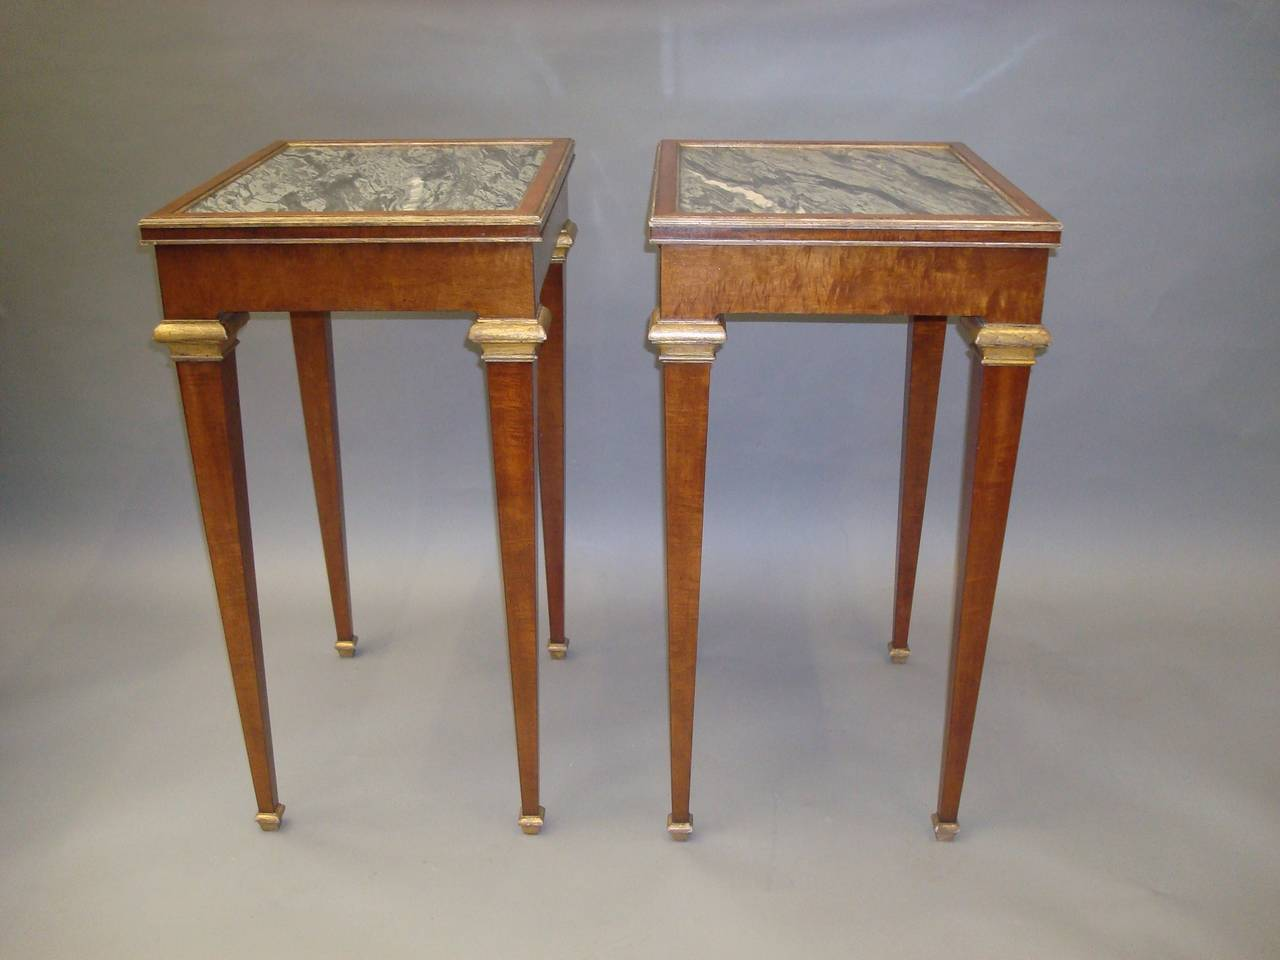 Marble top table - Stylish 19th Century Pair Of Mahogany With Marble Top End Tables 3